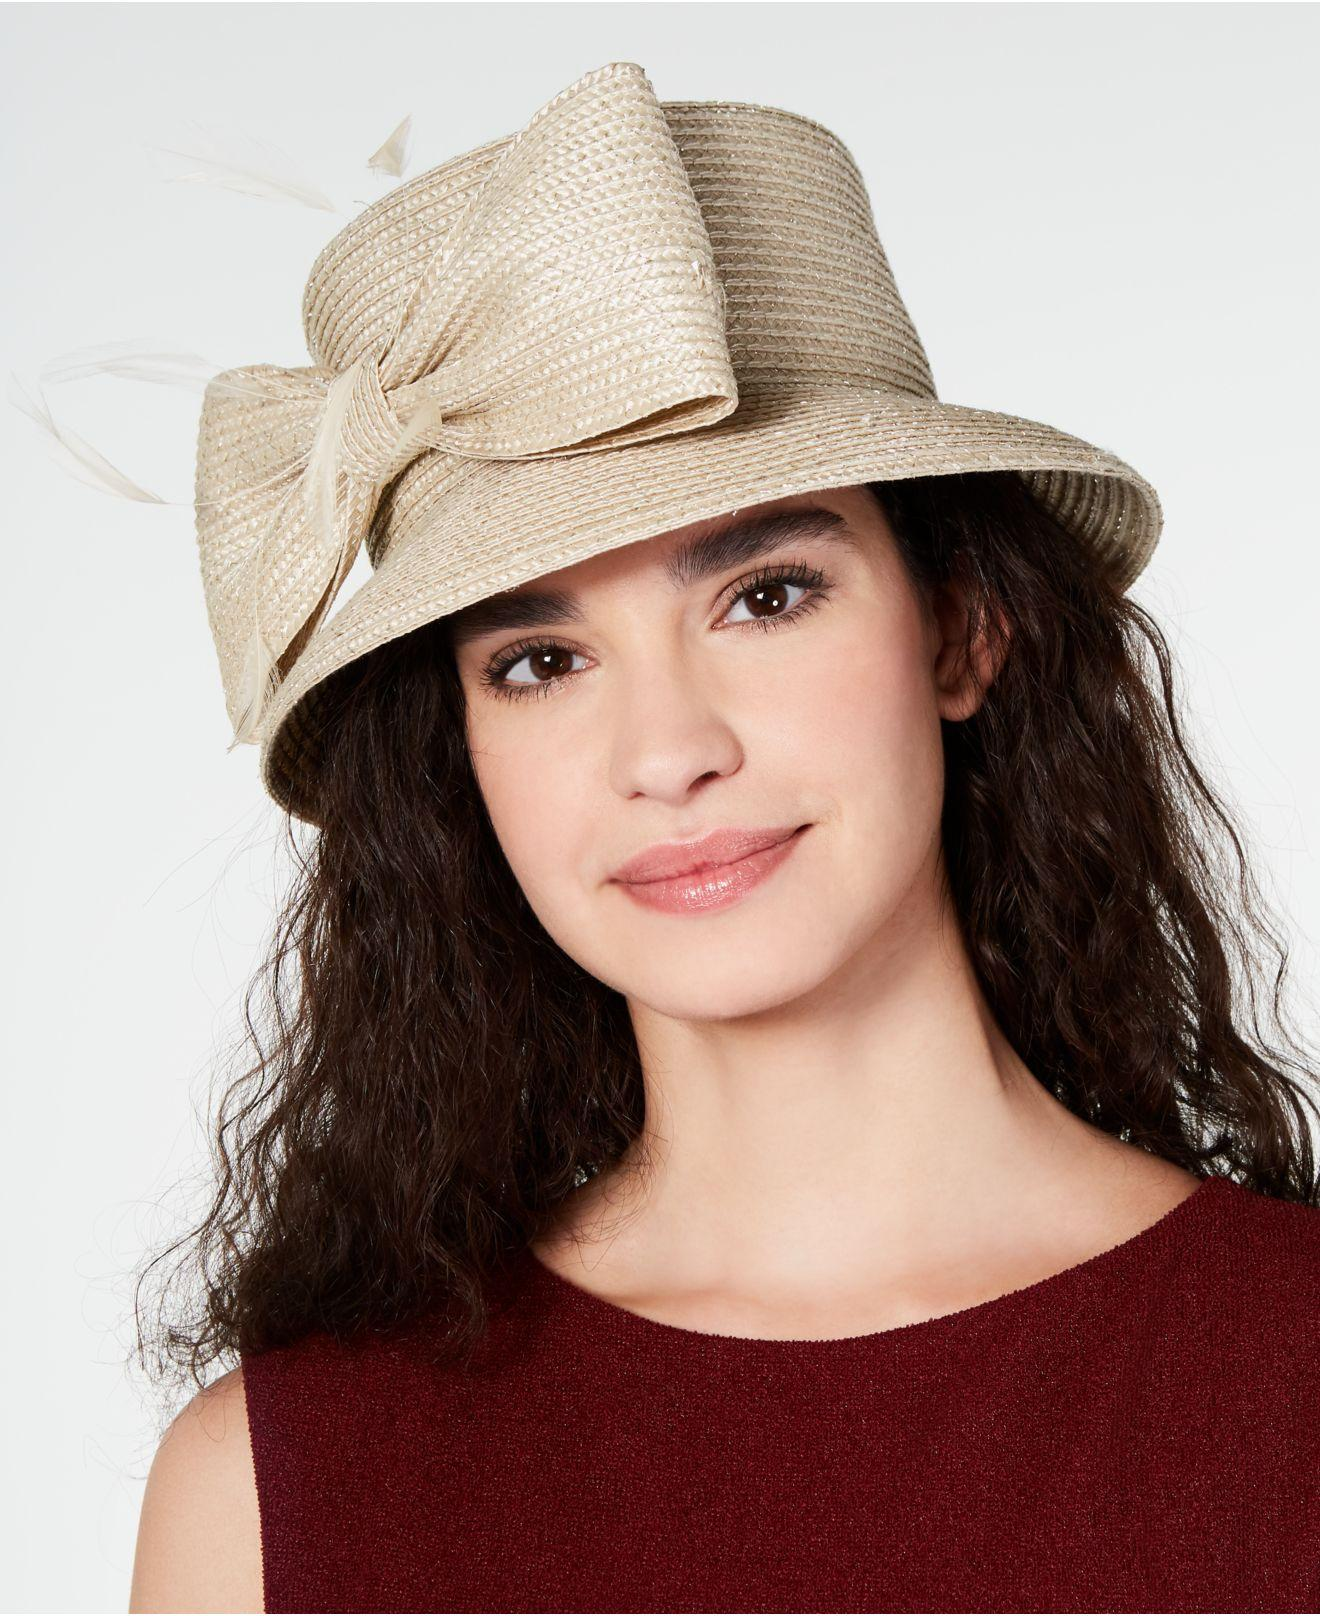 efb70441fb988 Lyst - August Accessories Metallic Bow Cloche